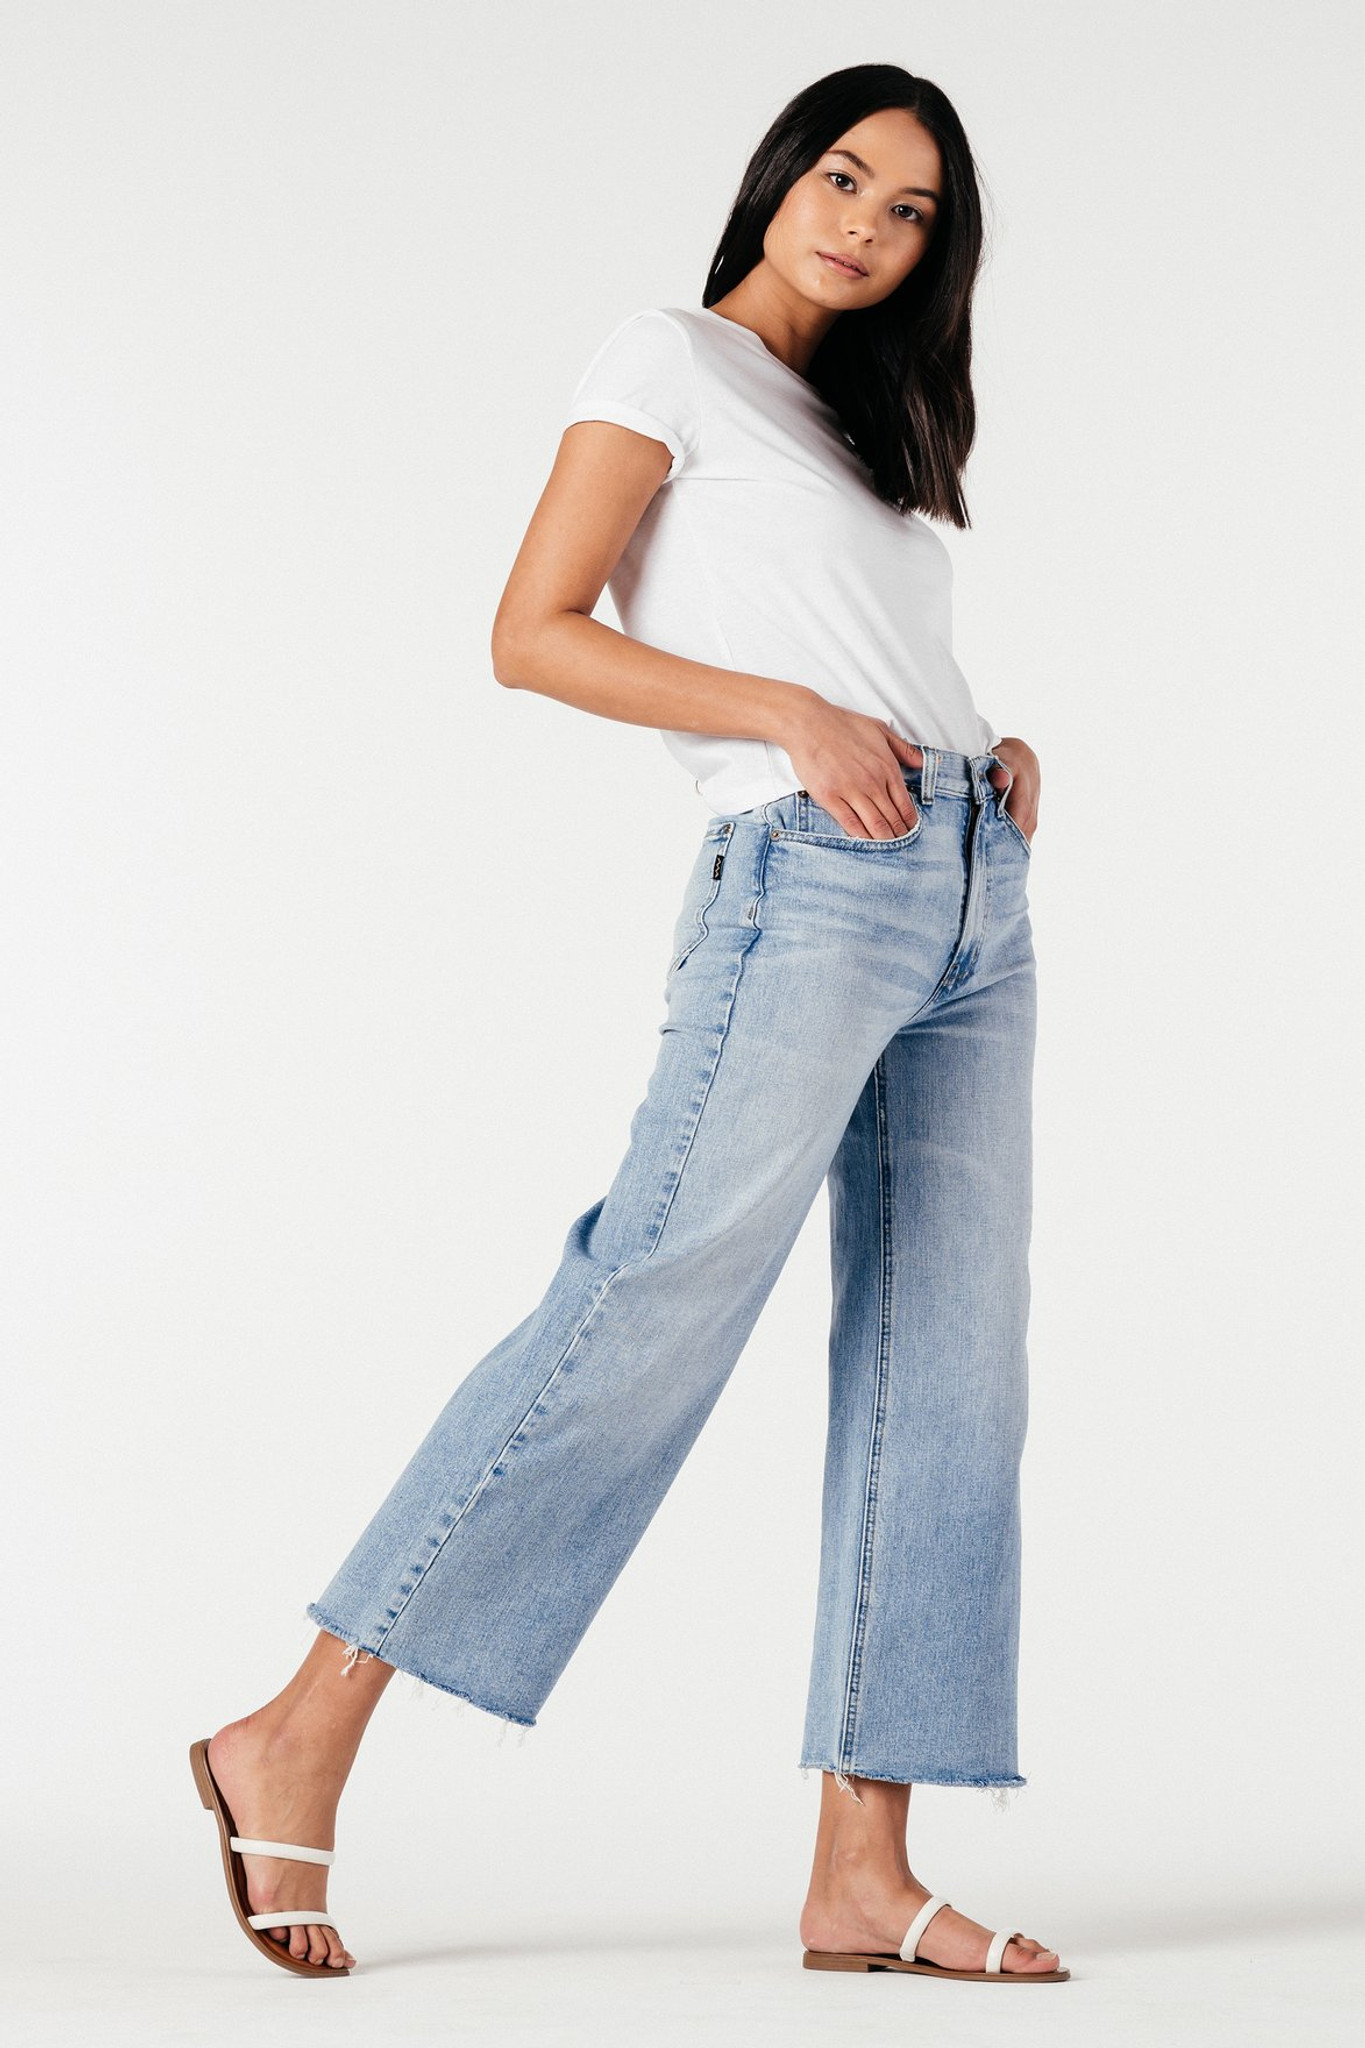 High and wide. For the MOD/AM girl who likes a bit of drama. This silhouette is full throughout the leg and showcases movement in a beautiful way. The light blue denim wash with some fraying at the hem is perfect for a beach day or brunch and a farmer's market. Paying homage to the 70s, this retro pant is made modern by its Ludwig Fabric, giving it a denim look that also stretches.